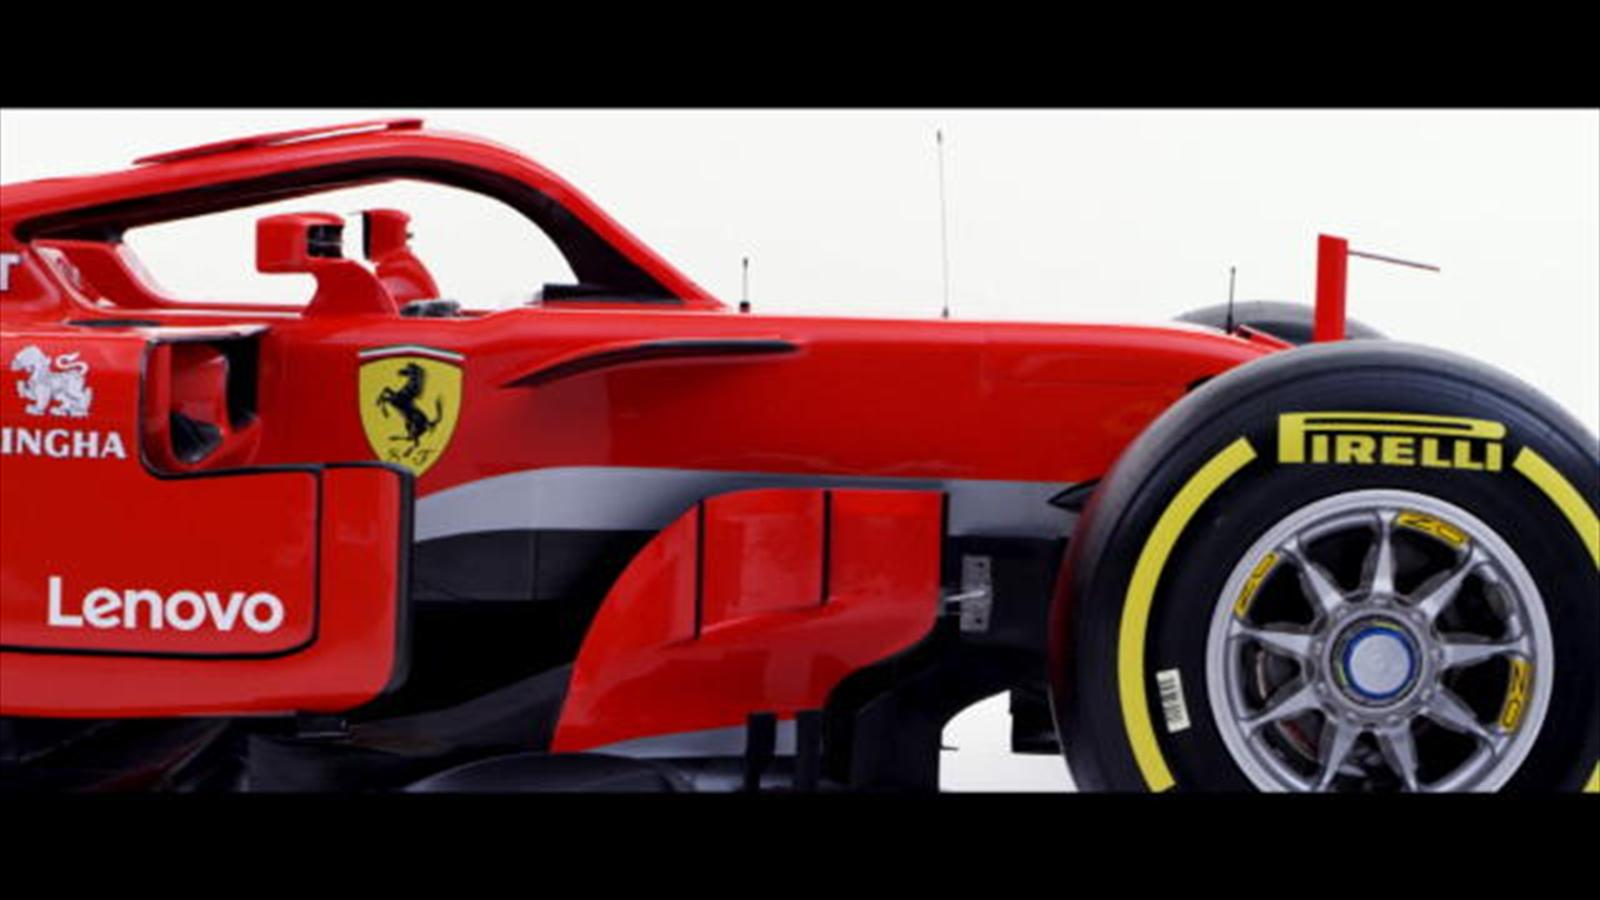 vid o f1 ferrari pr sente son nouveau bolide video eurosport. Black Bedroom Furniture Sets. Home Design Ideas